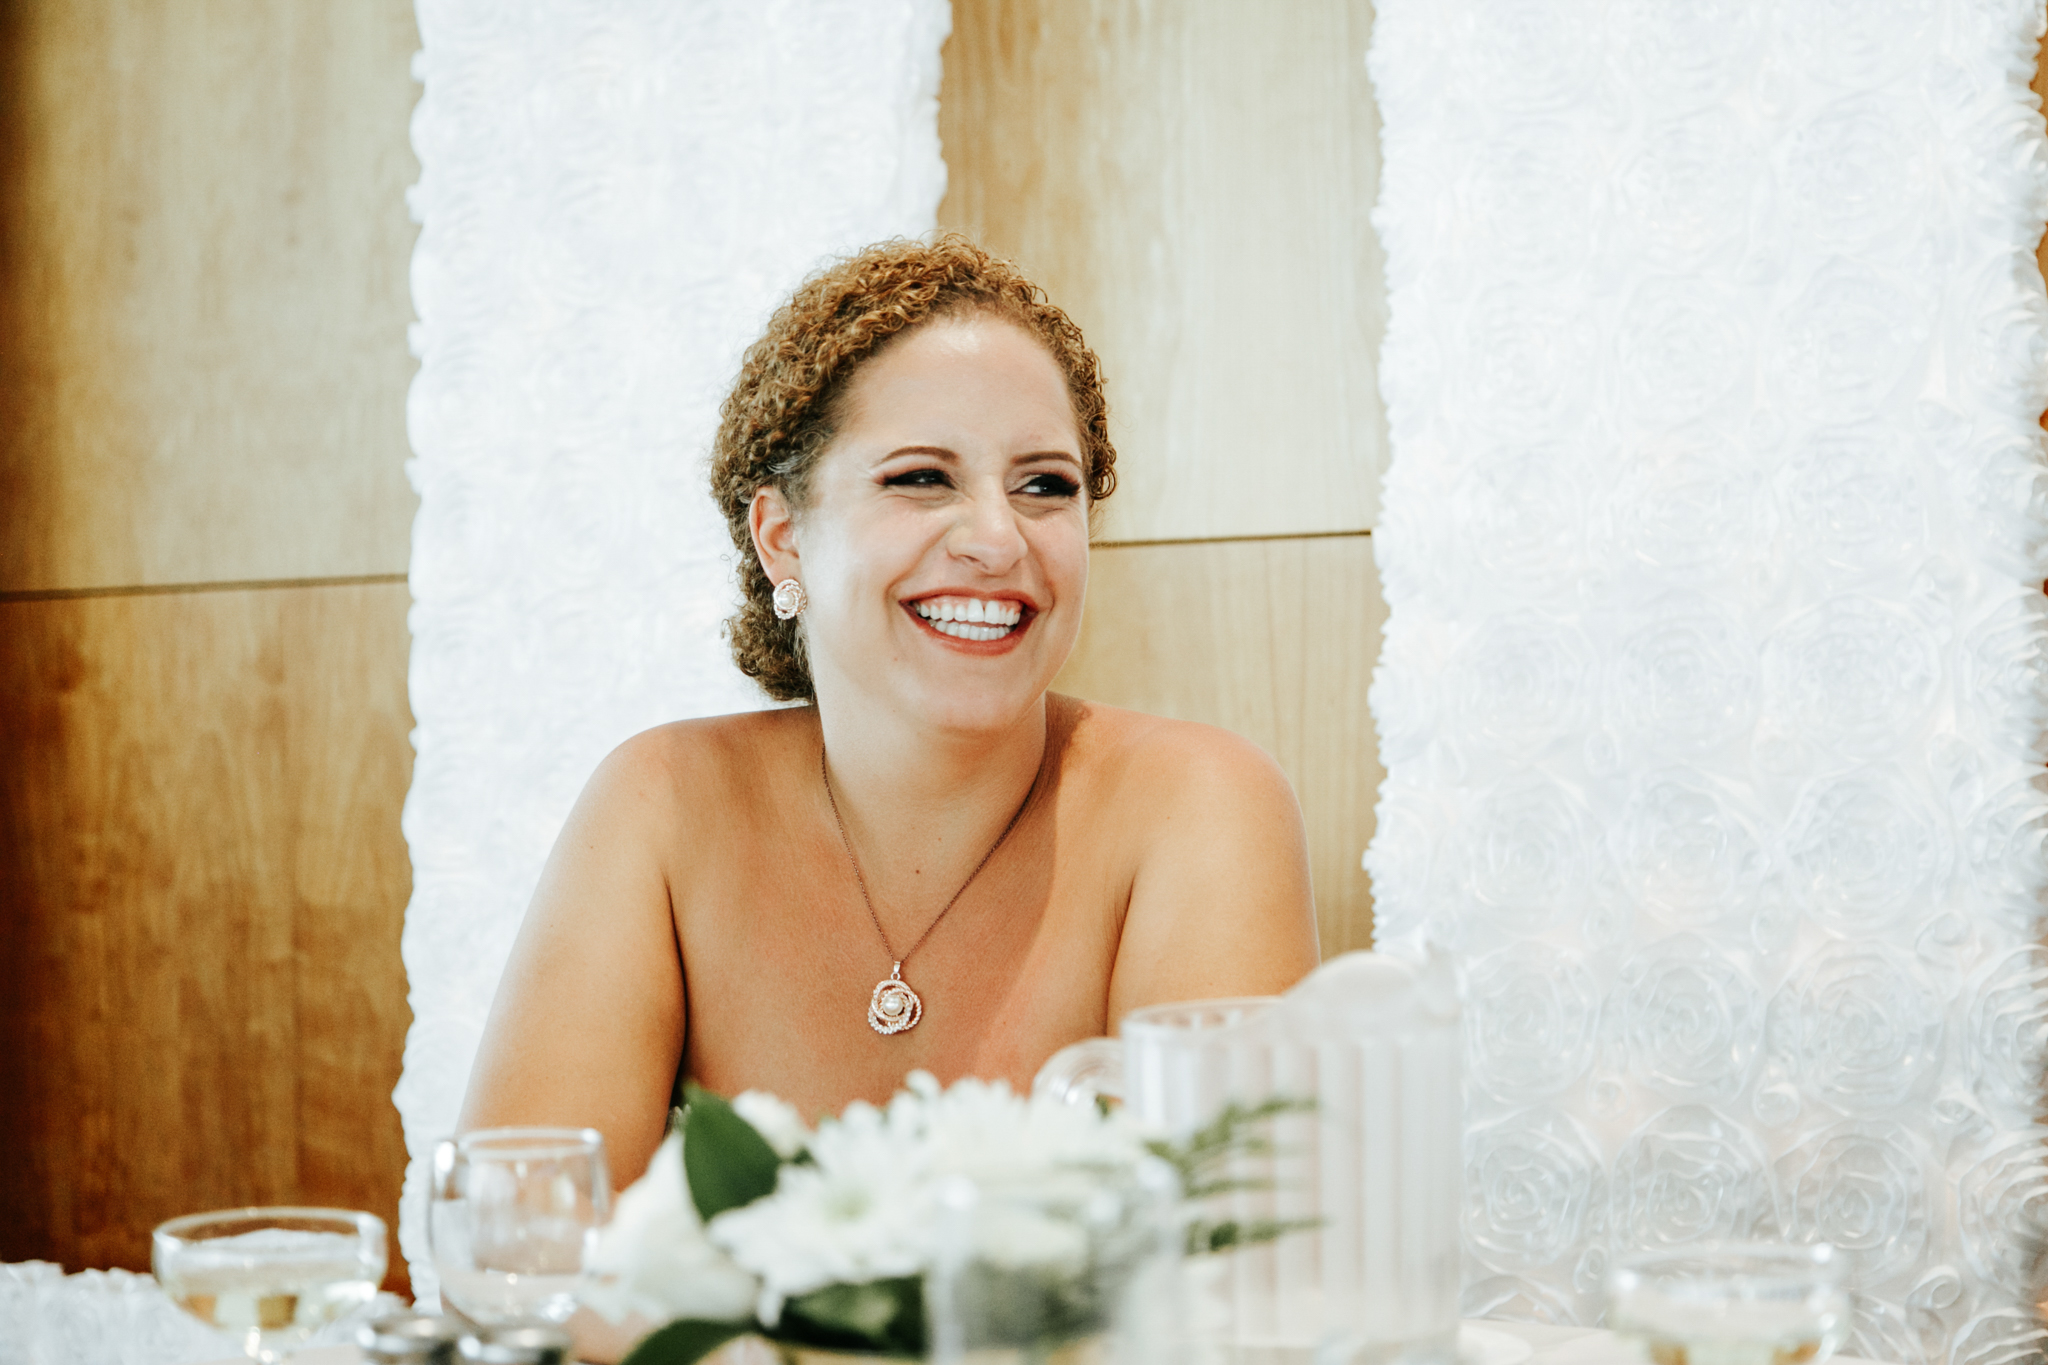 lethbridge-wedding-photographer-love-and-be-loved-photography-trent-danielle-galt-reception-picture-image-photo-180.jpg